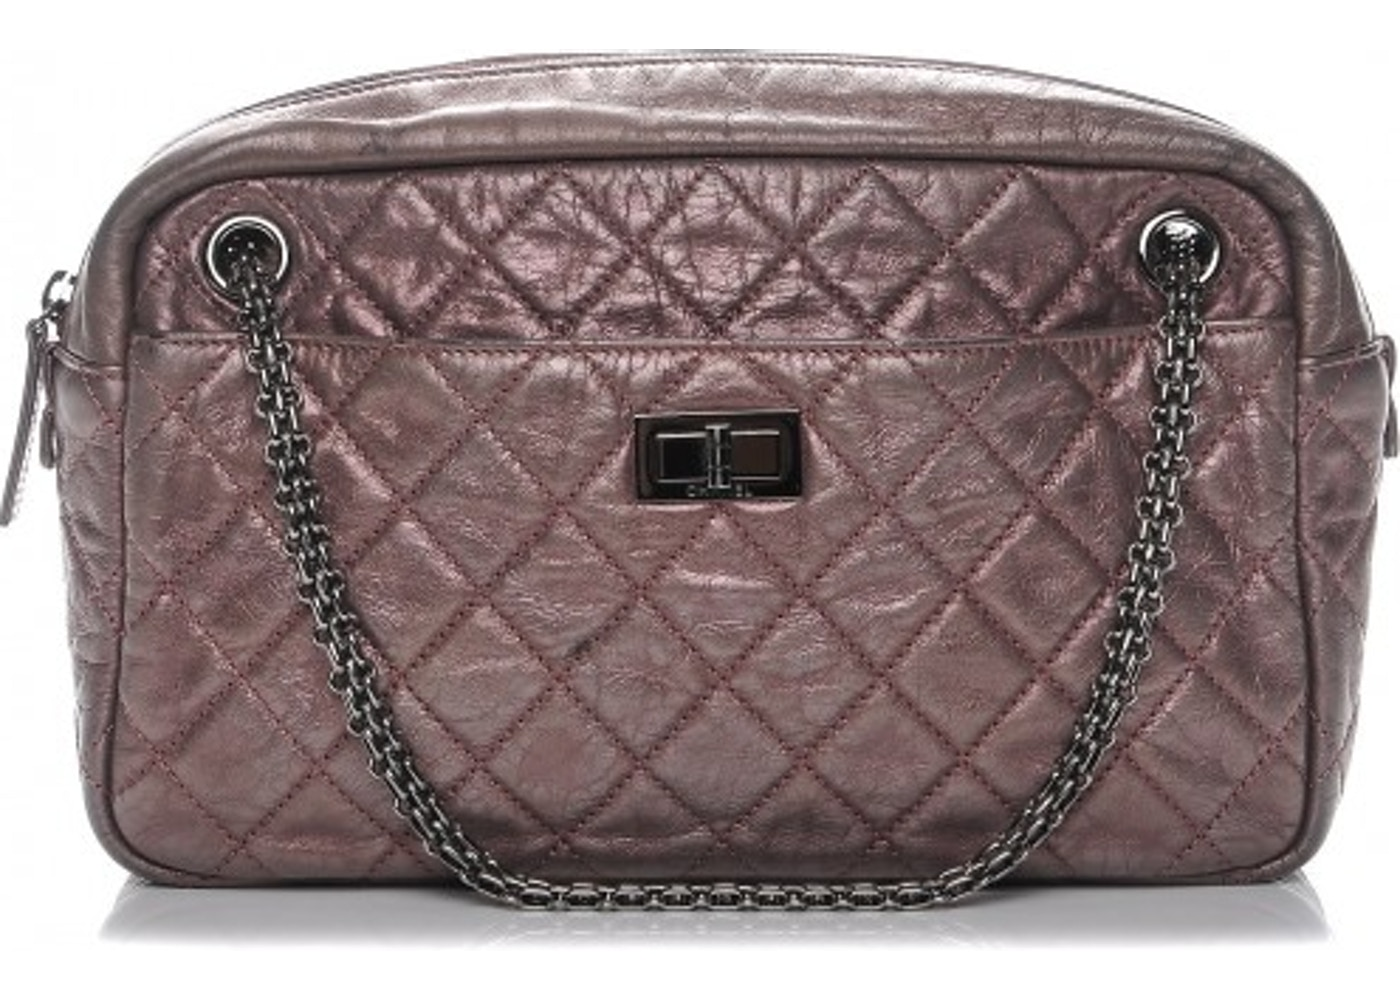 2a69e288758e14 Chanel Reissue Camera Case Diamond Quilted Aged Large Metallic Pink.  Diamond Quilted Aged Large Metallic Pink